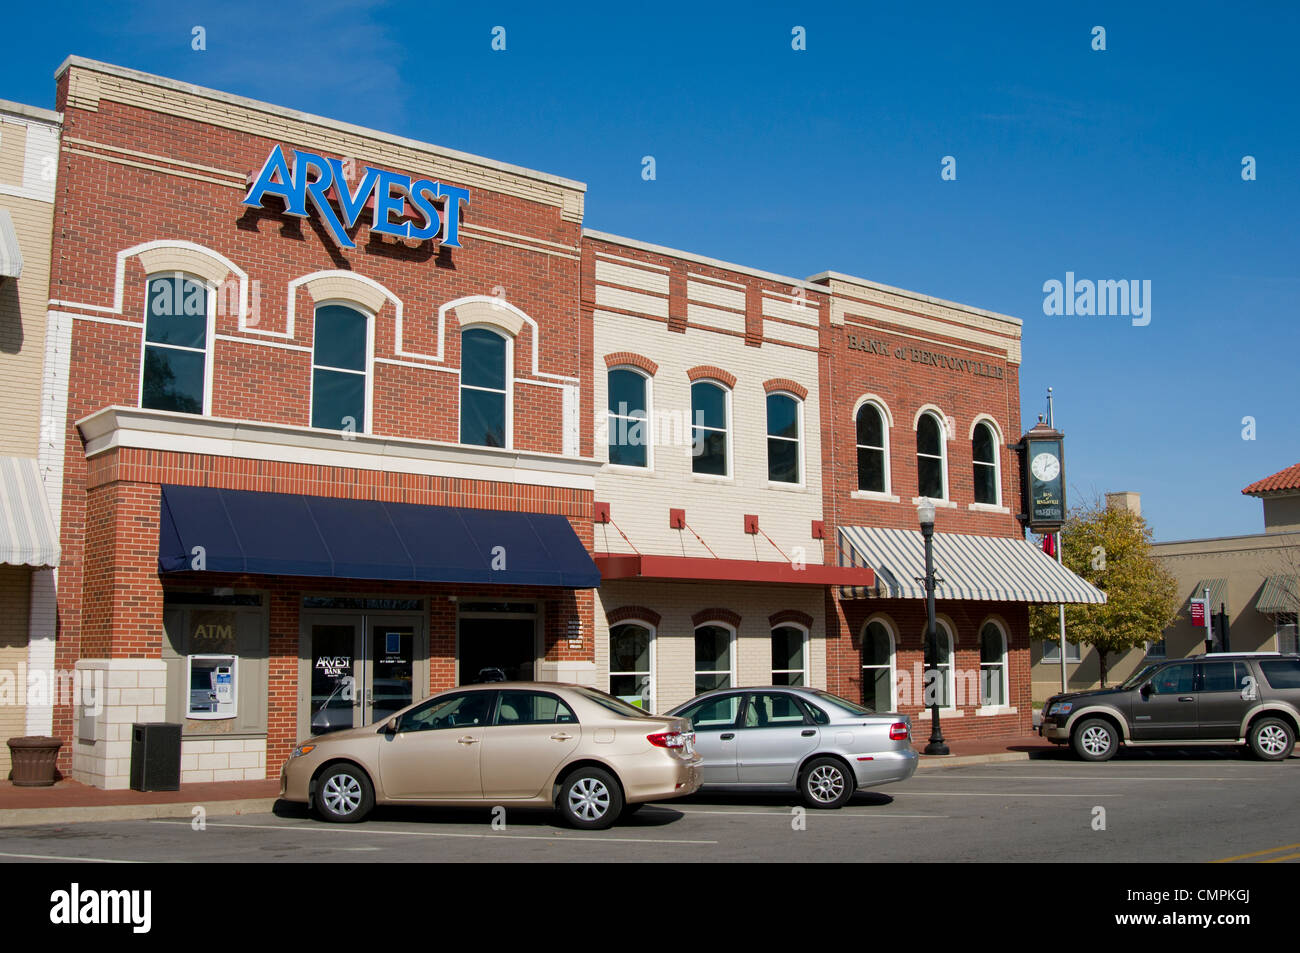 Arvest Bank on the town square in Bentonville, Arkansas